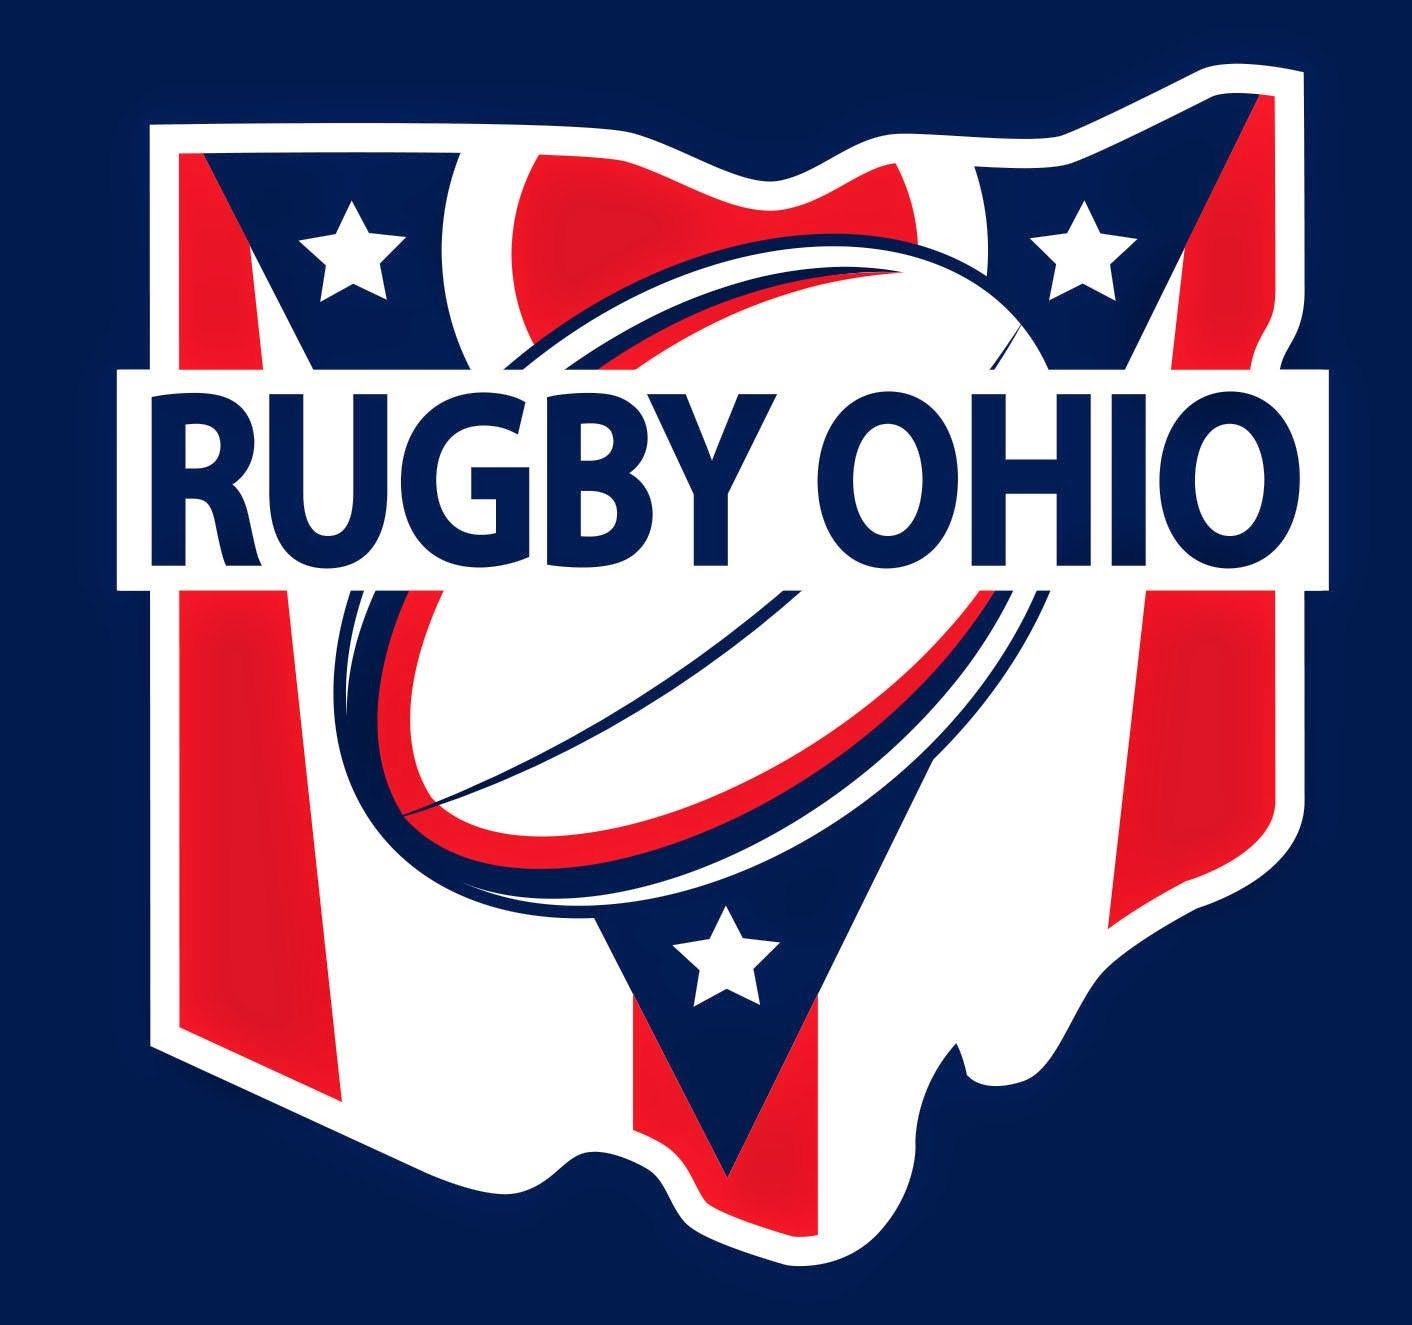 Rugby Ohio logo. (Source: Rugby Ohio Web site.)